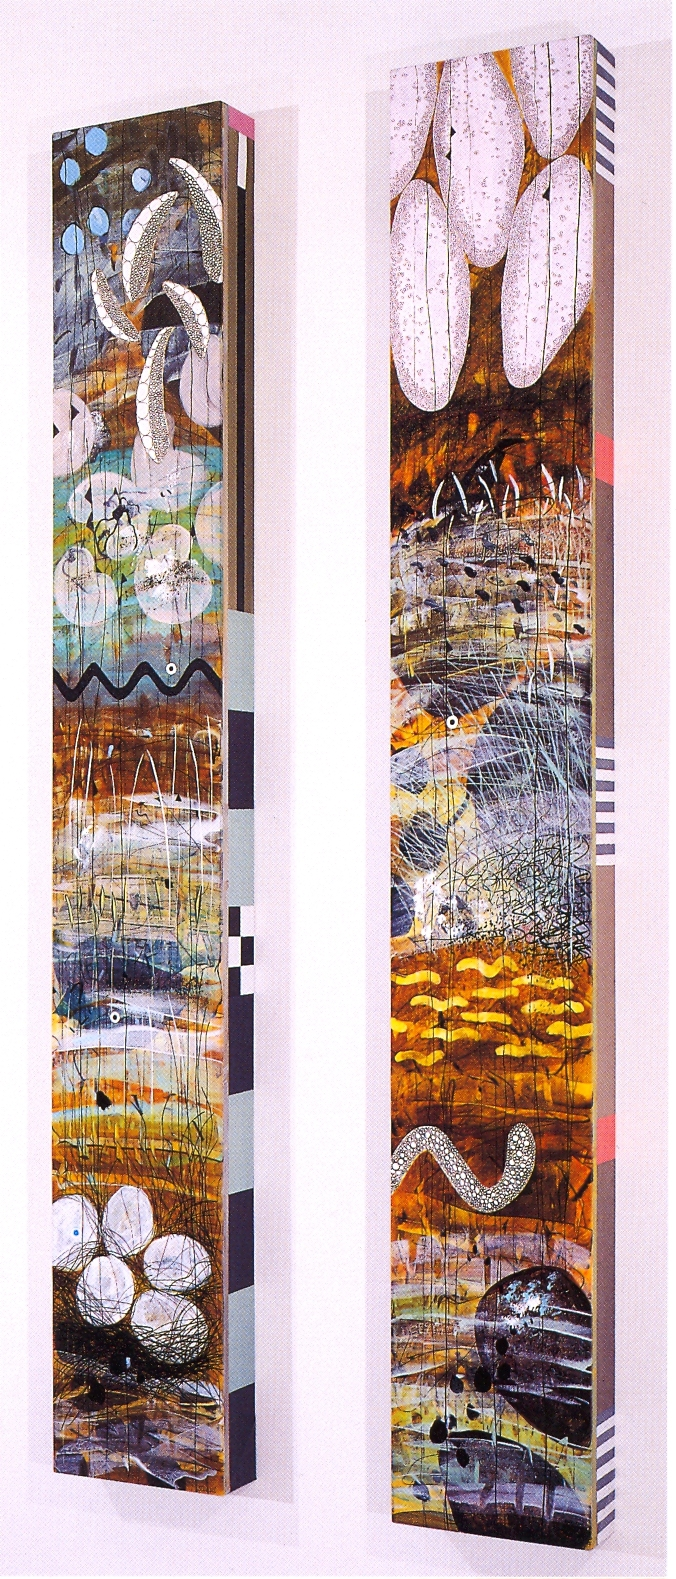 "Betsy Stewart,   Pond Totem #25   (Left),   Pond Totem #20   (Right), 2002, Acrylic and Sumi Ink on canvas, 70"" x 10"" x 3 1/2"" (Each Panel)"